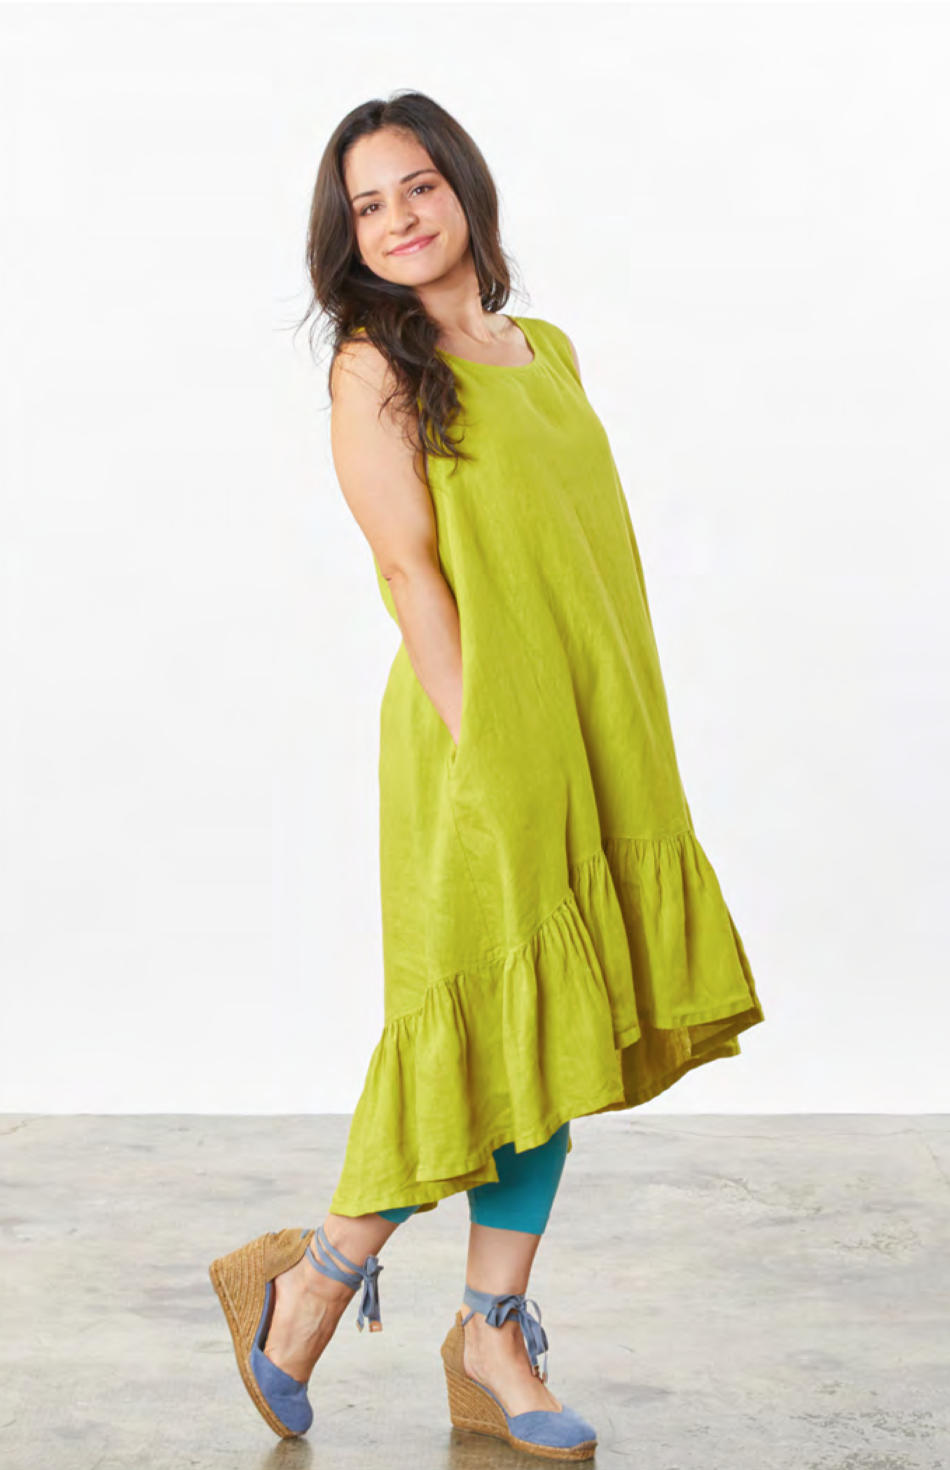 Bryn, Walker, usa, california, fashion, collection, brand, american, local, made, in, berkely, ladies, wear, ladieswear, ss2021, 2021, spring, summer, linen, lime, dress